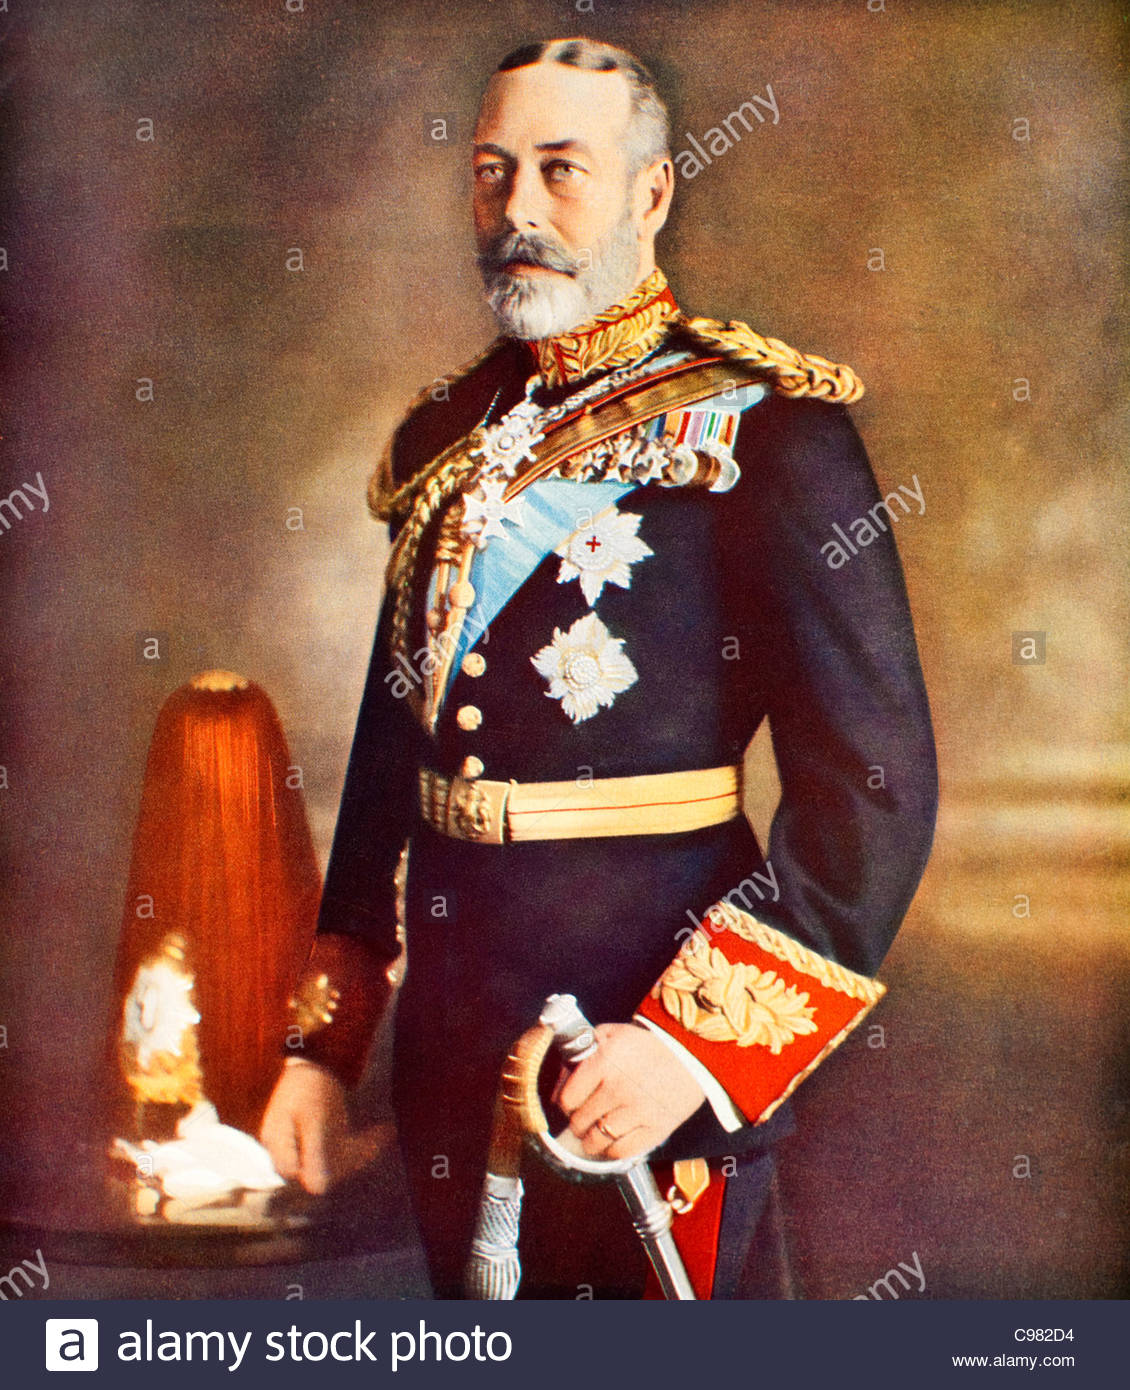 Un portrait du roi George V Photo Stock